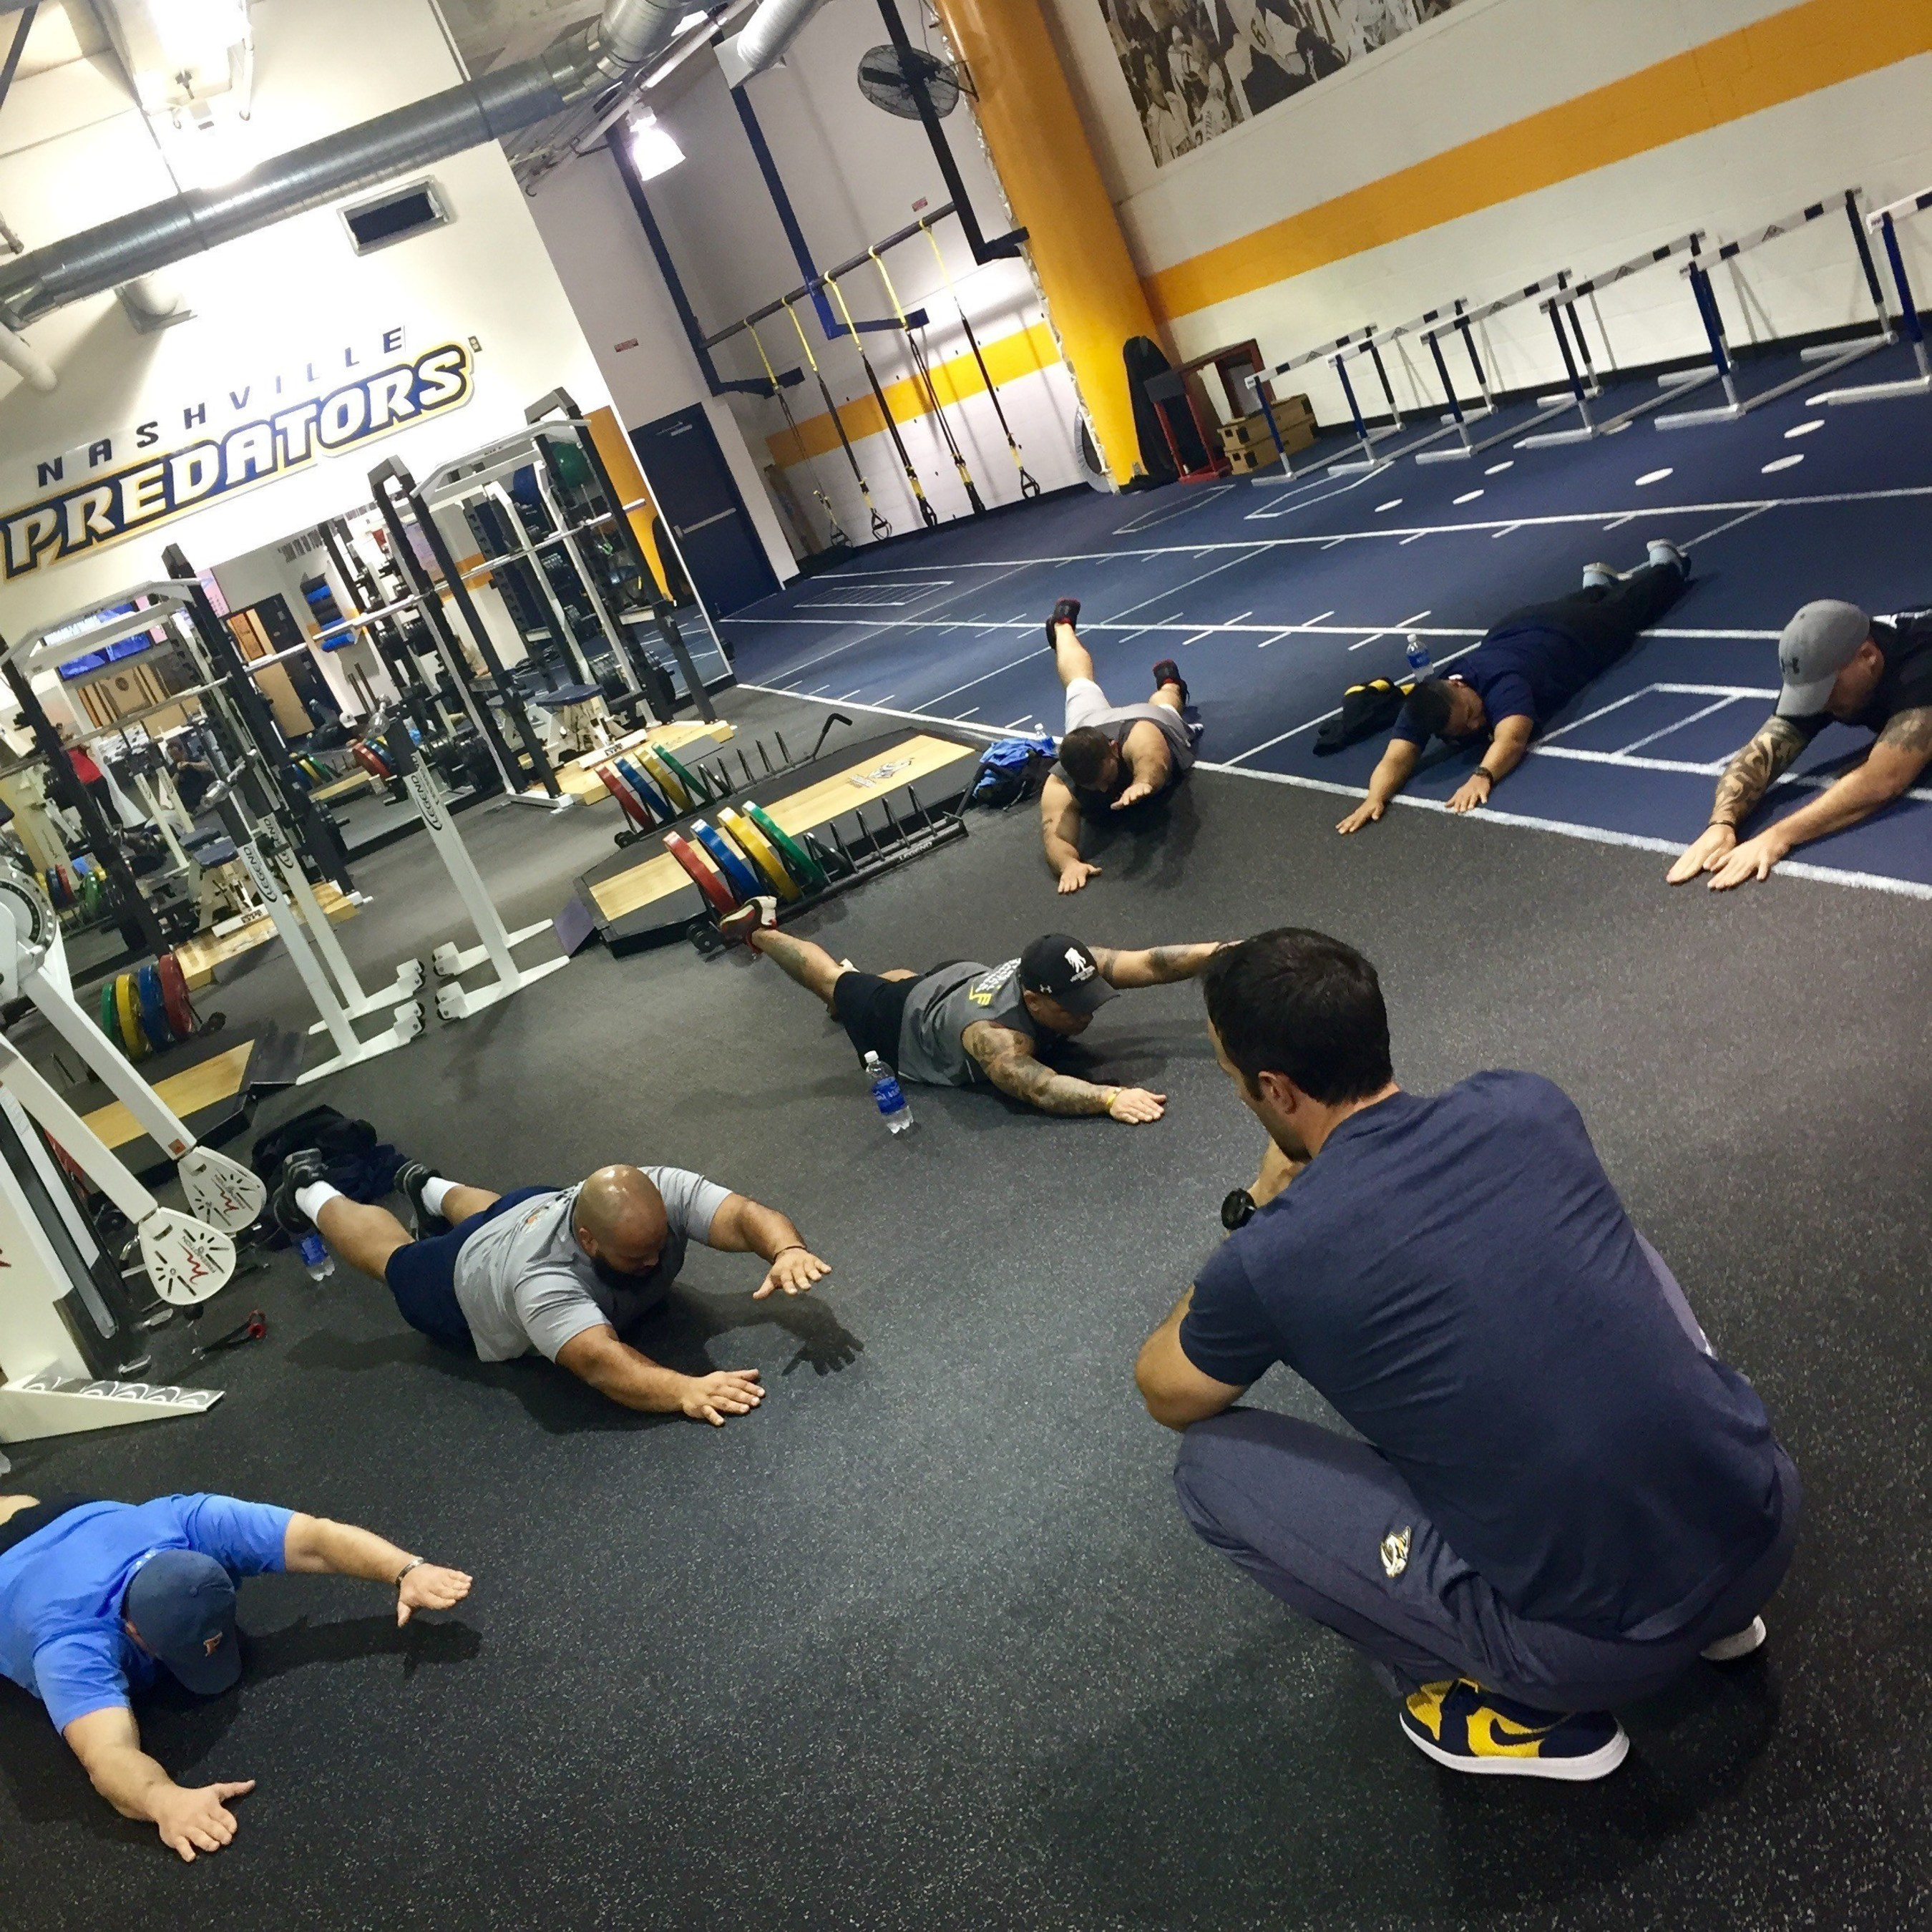 Wounded veterans trained with the Nashville Predators training staff as part of the Physical Health and Wellness program offered by Wounded Warrior Project.